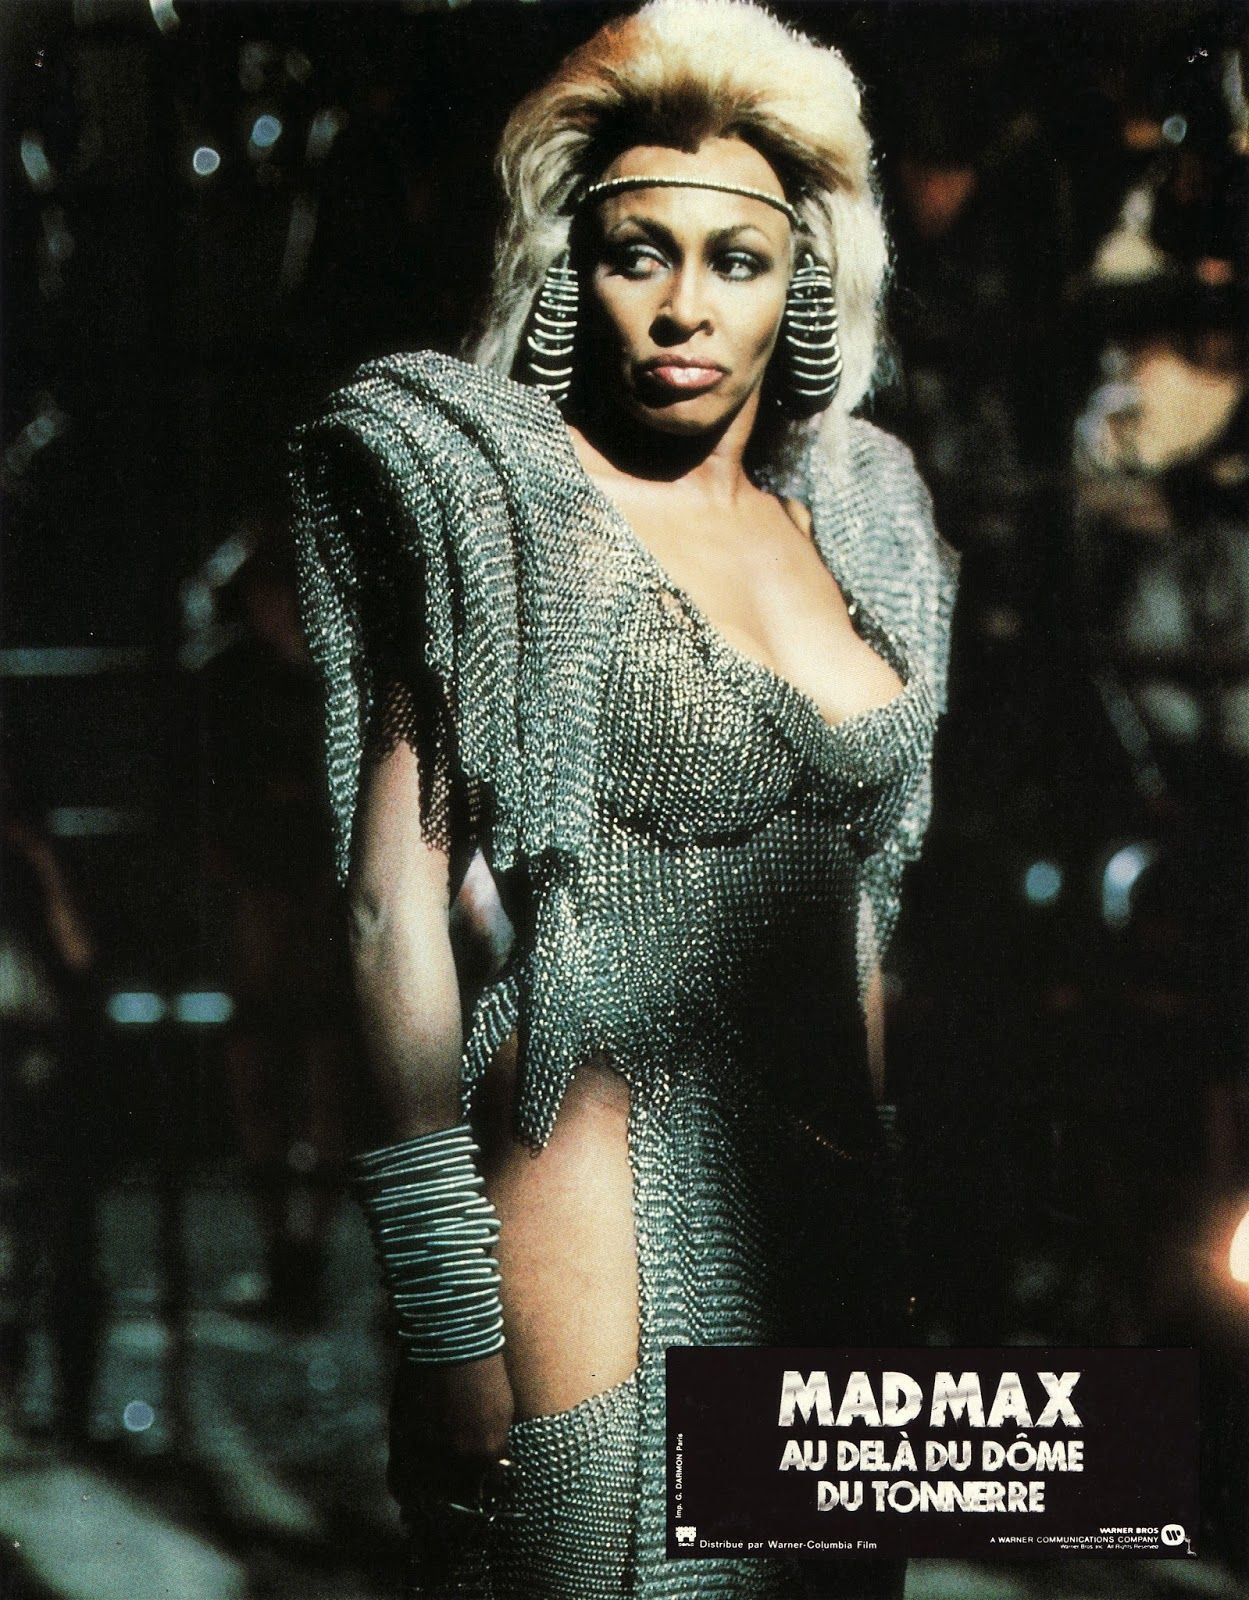 Can tina turner nude images think